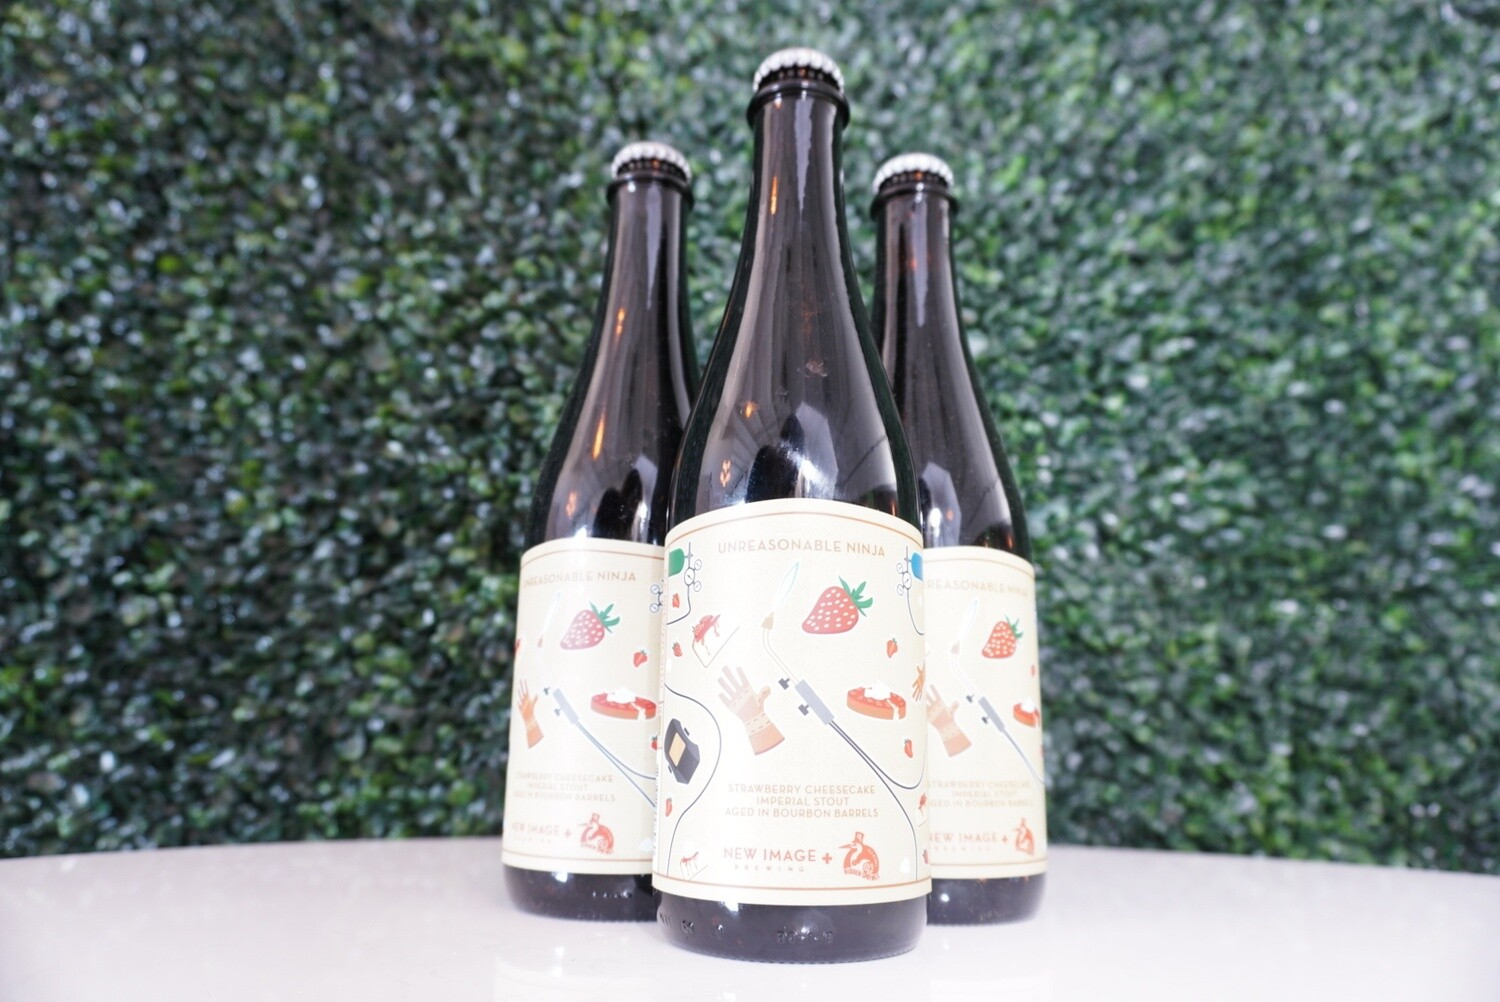 New Image Brewing - Barrel Aged Unreasonable Ninja - BA Imperial Stout - 13.85% ABV - 500ml Bottle